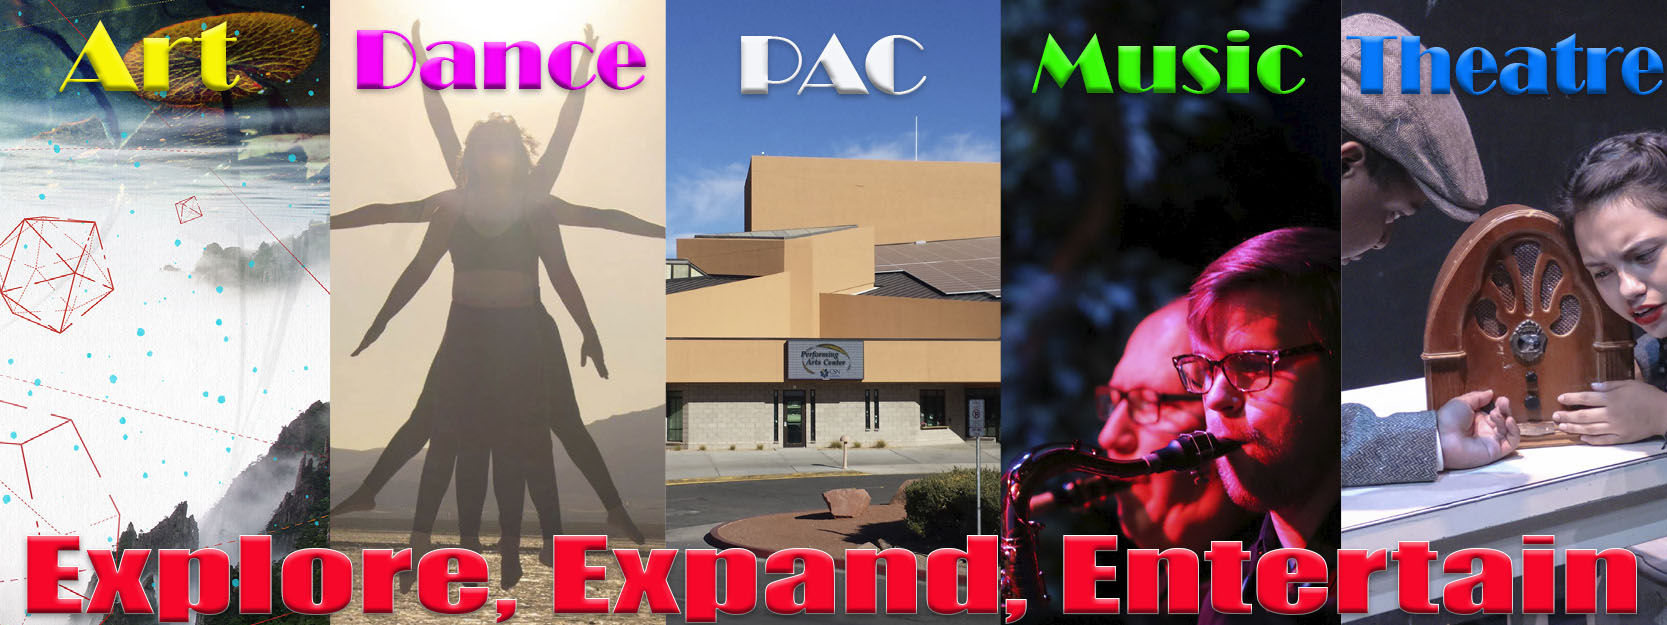 Explore and experience the performing arts